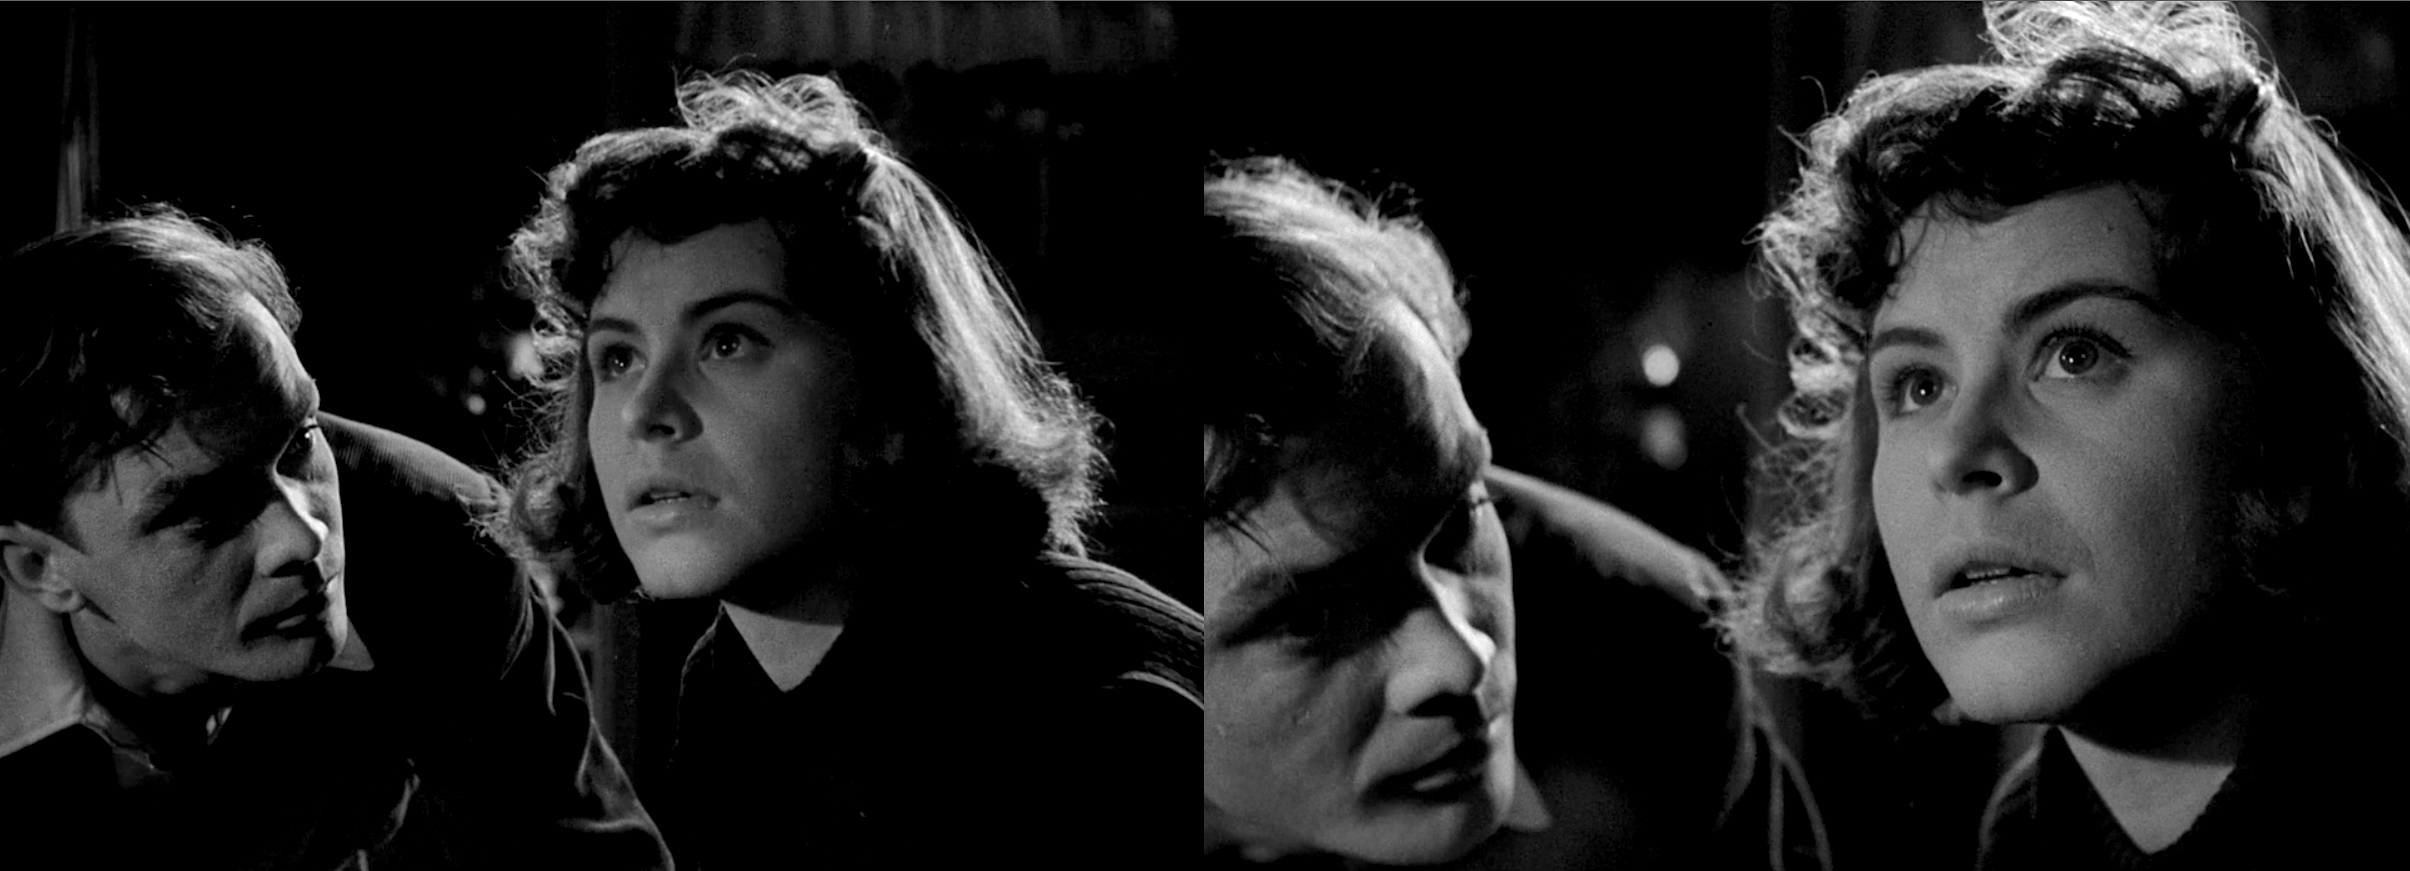 Birger Malmsten and Maj-Britt Nilsson in Bergman's  Summer Interlude  [1951].